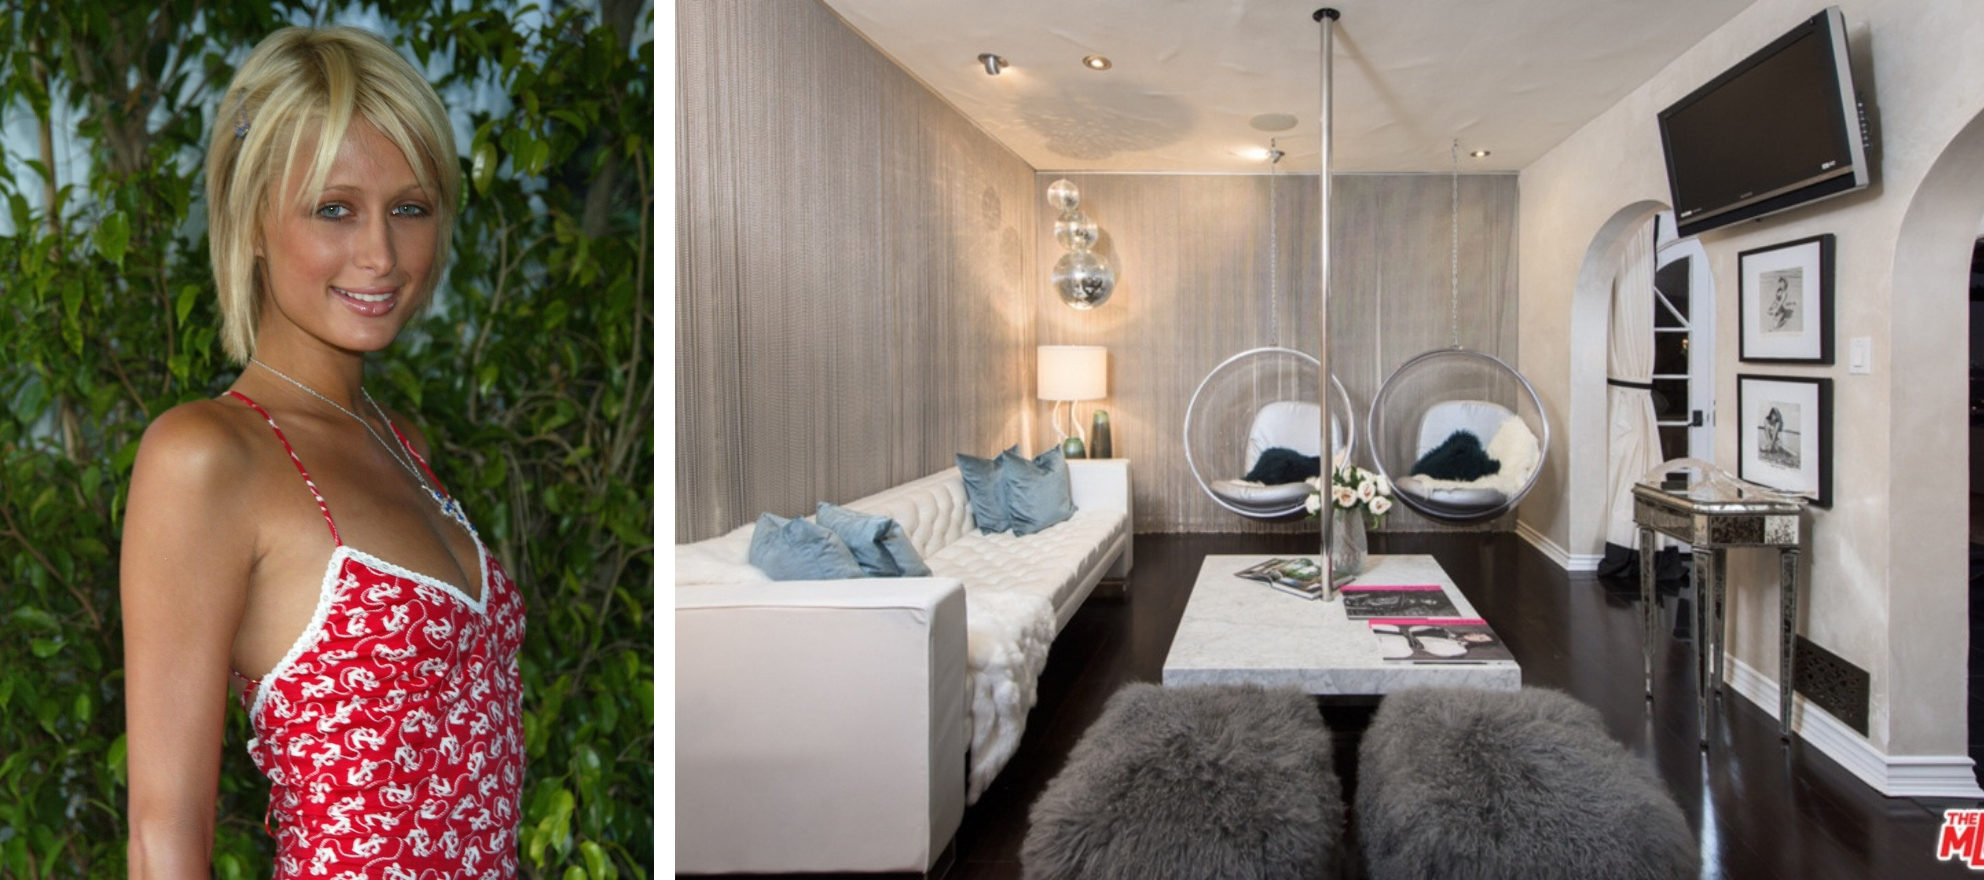 Paris Hilton's old party pad up for rent — stripper pole included